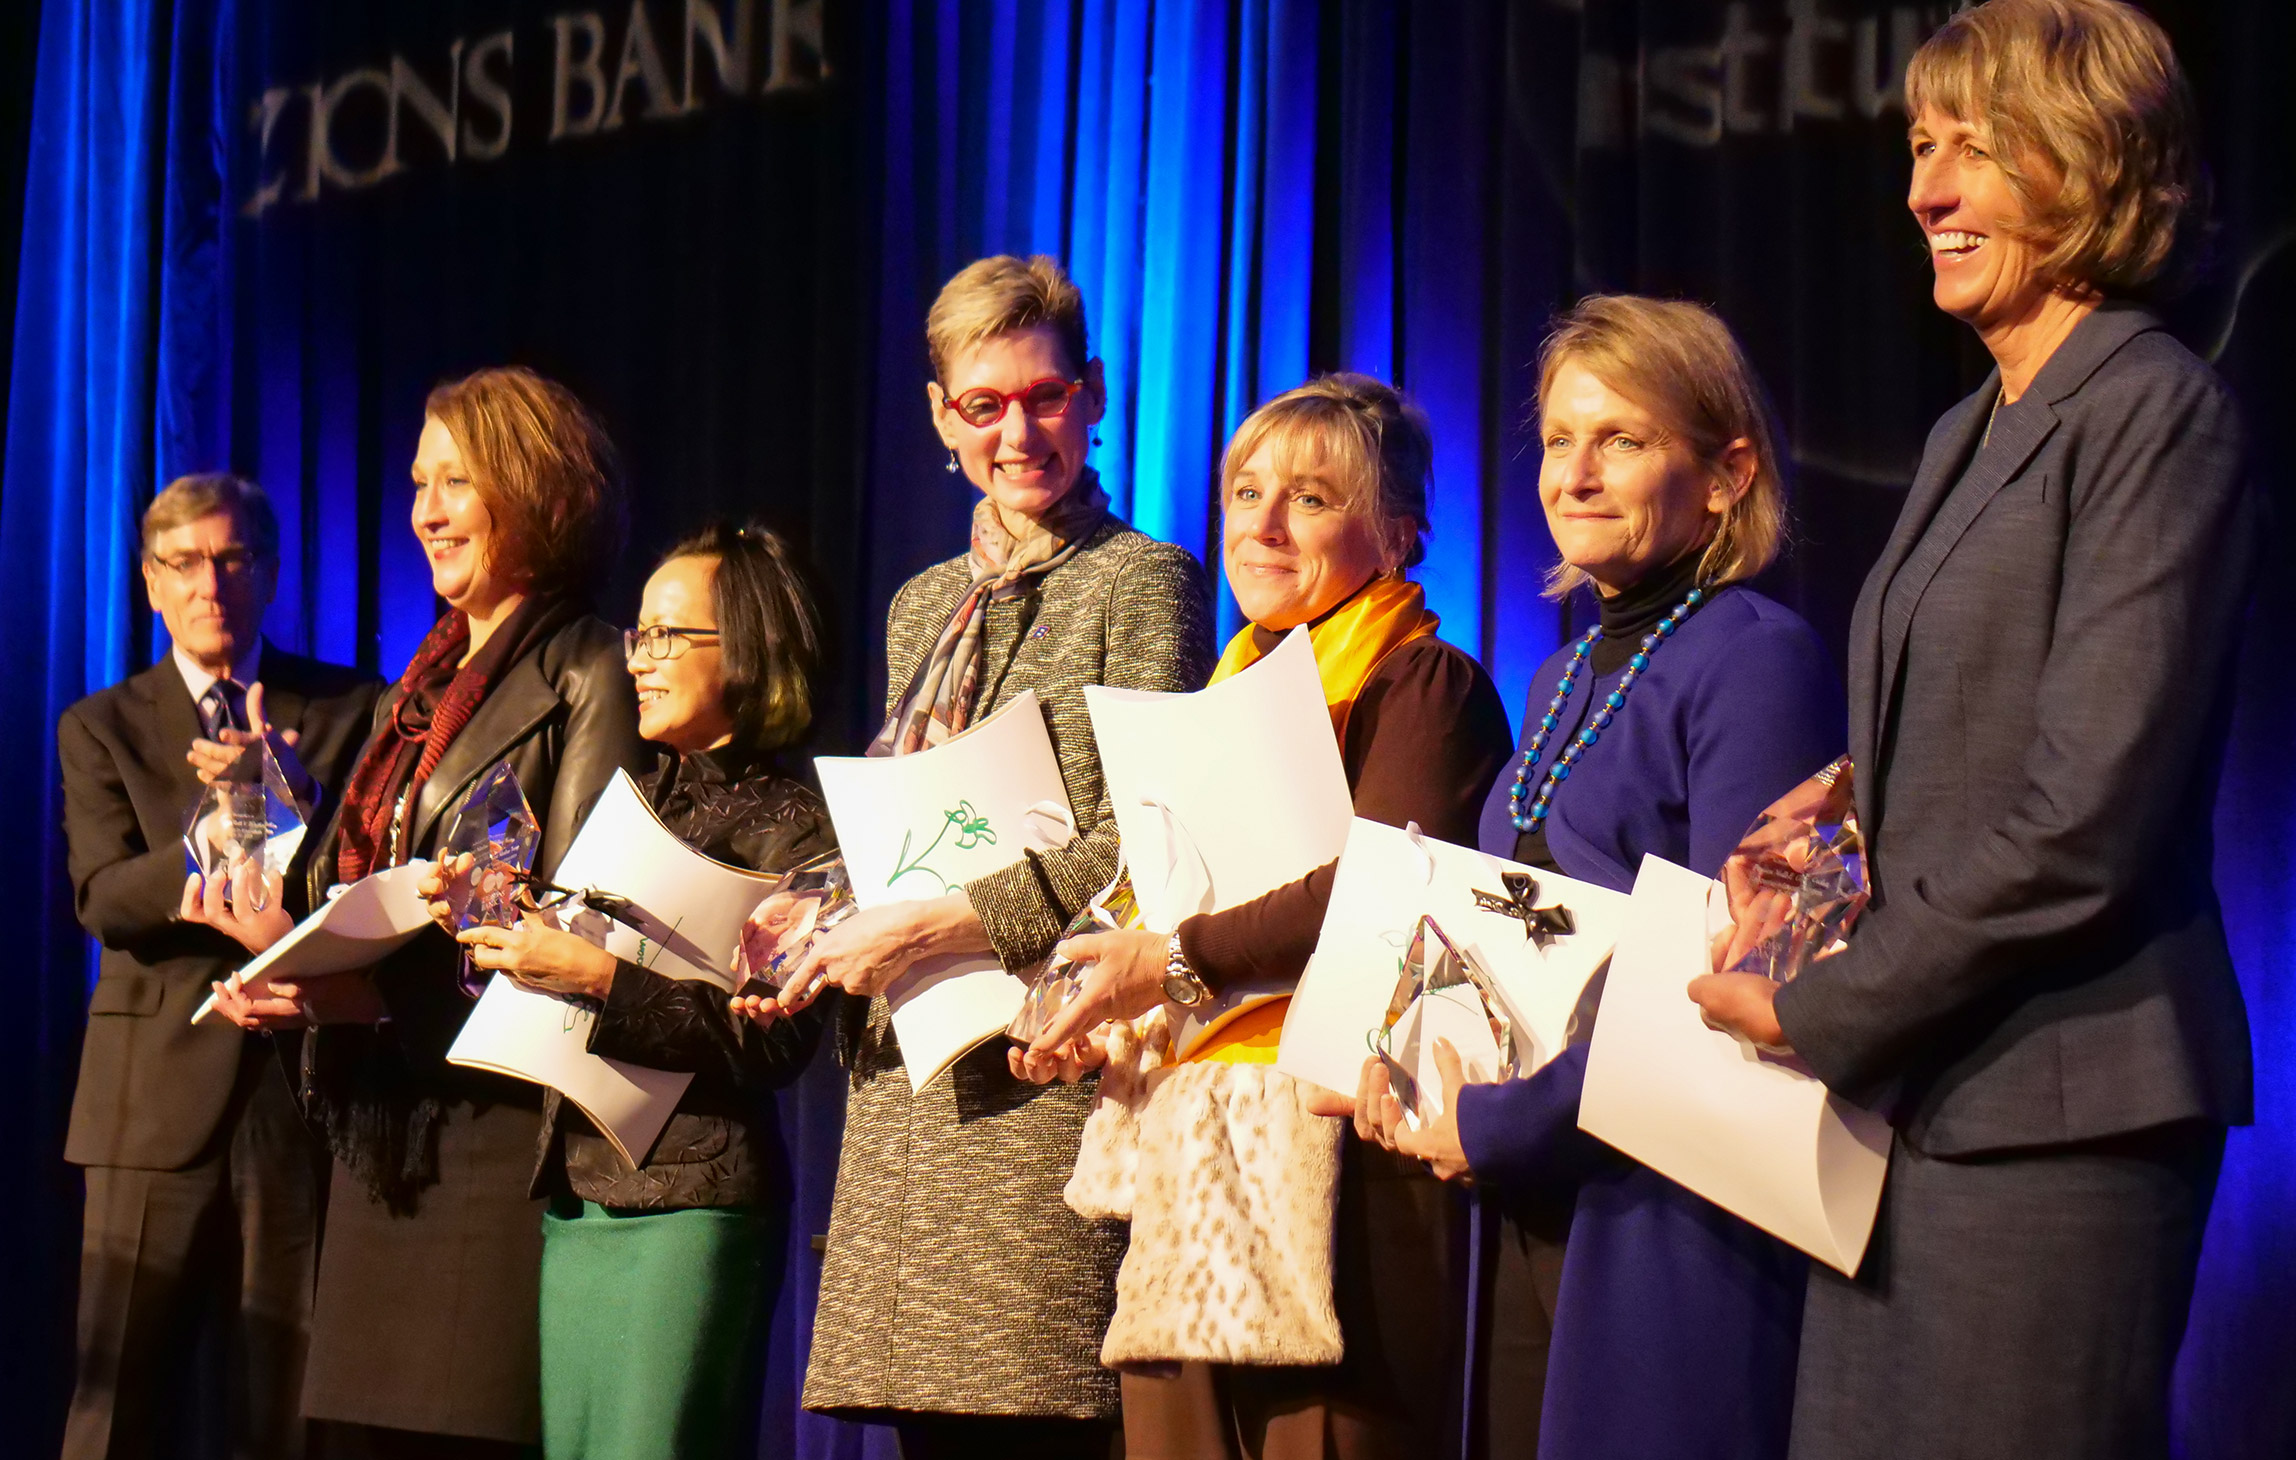 Women's Leadership Celebration honorees stand together